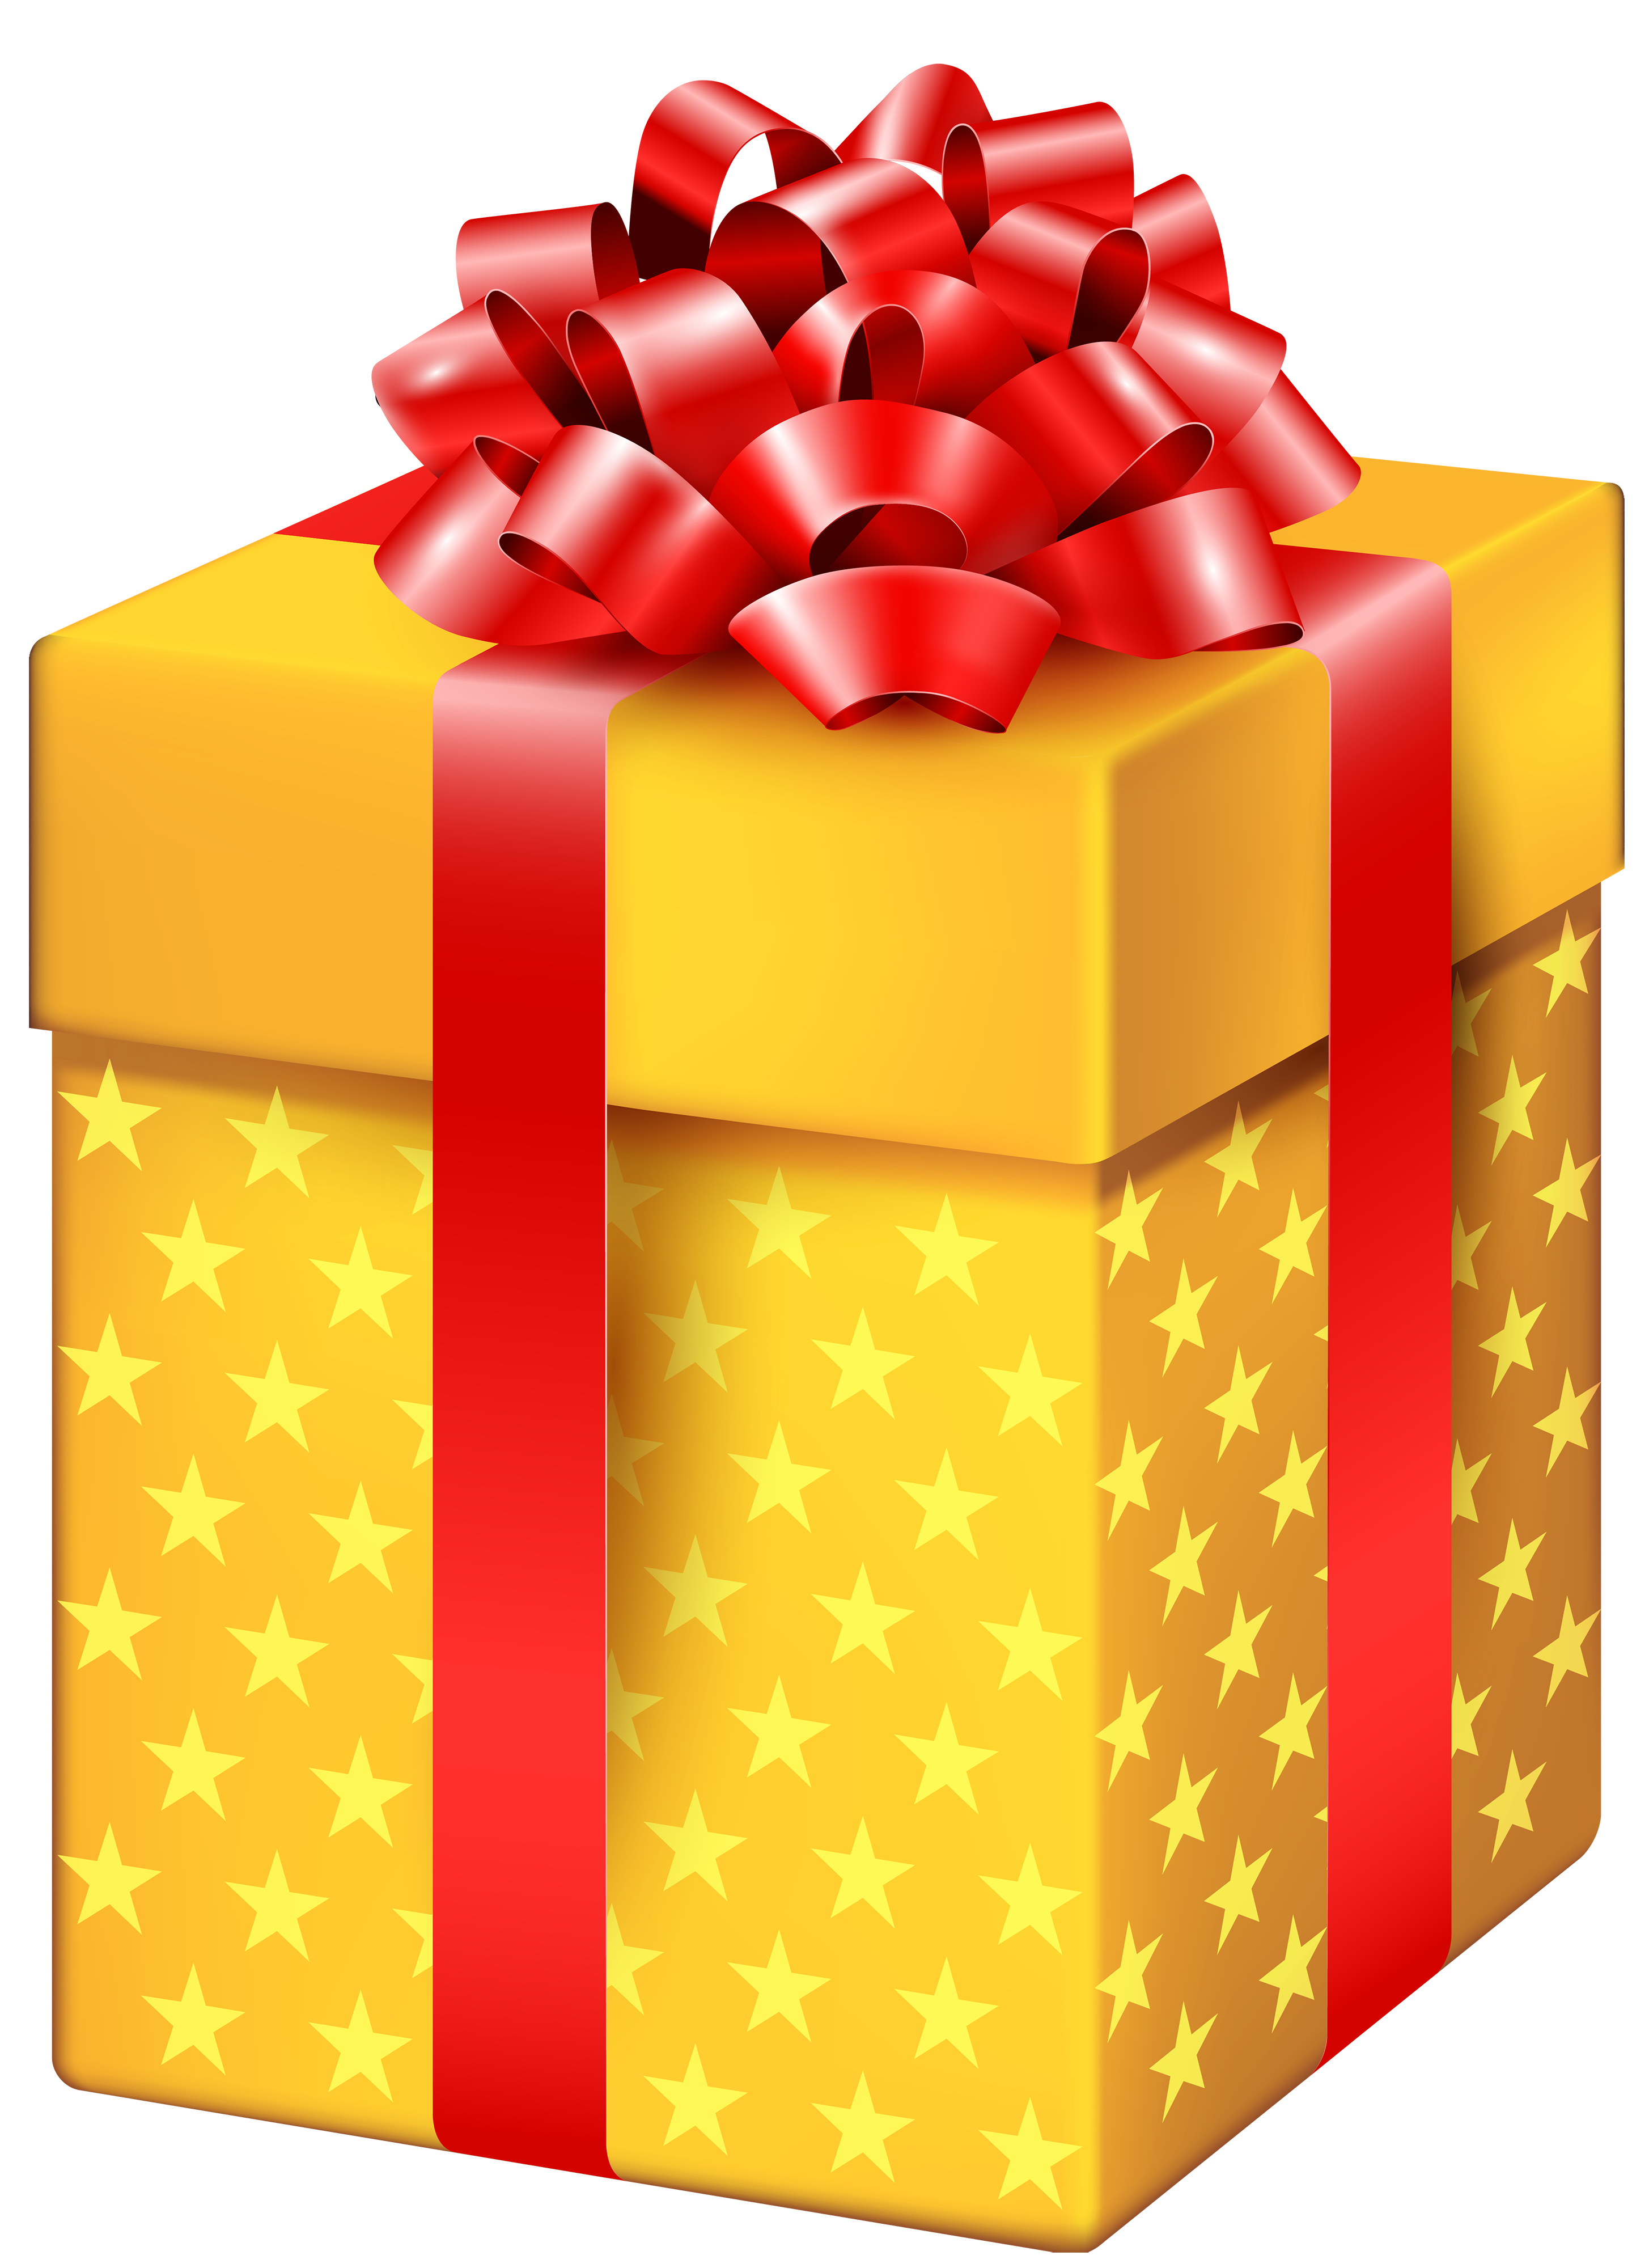 A Gift PNG - 158798